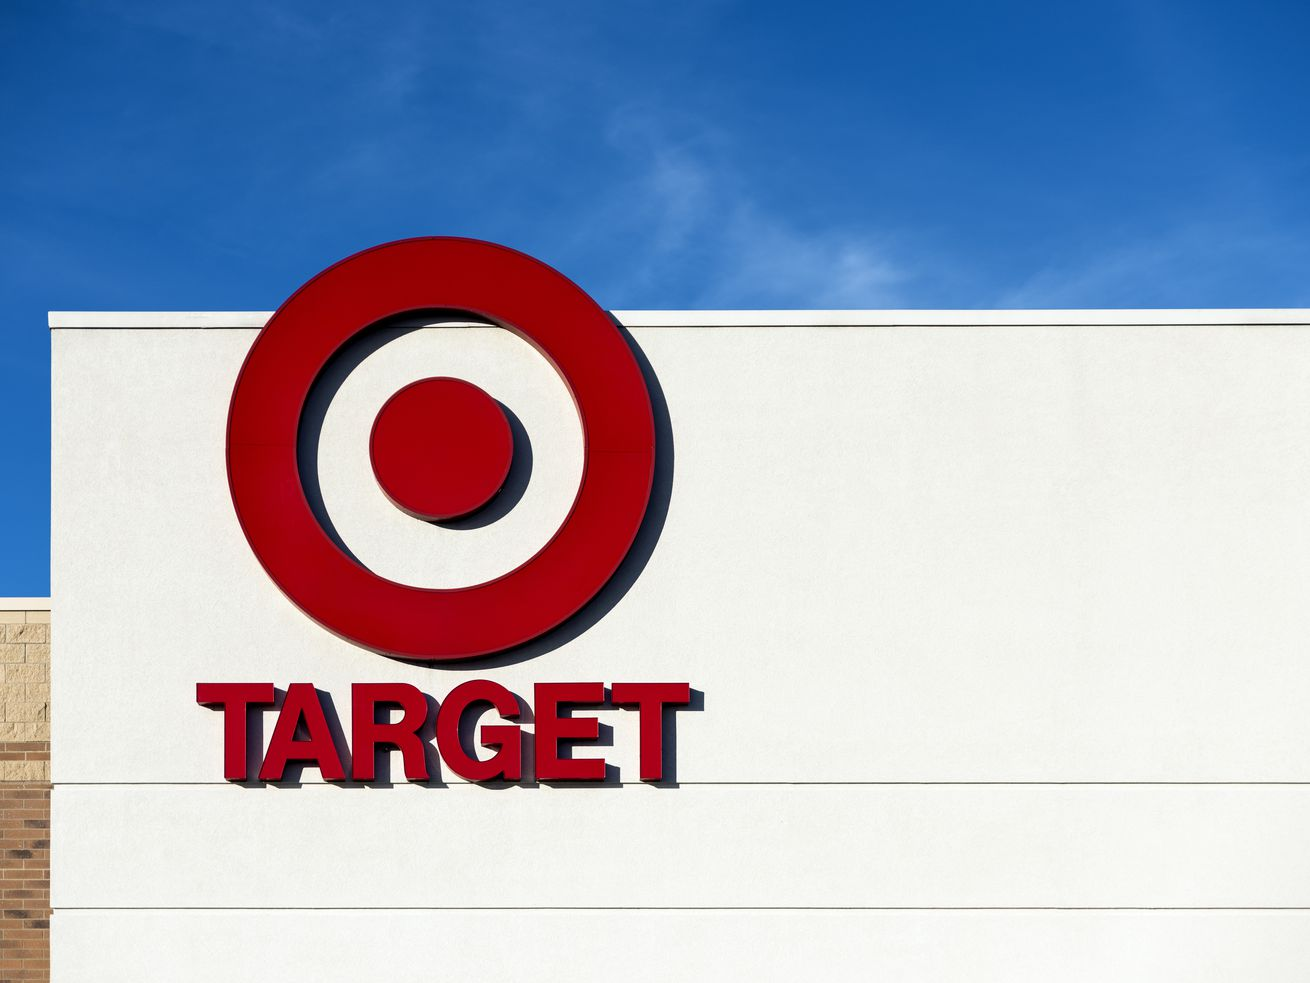 The Target bullseye logo on the front of a Target retail store.